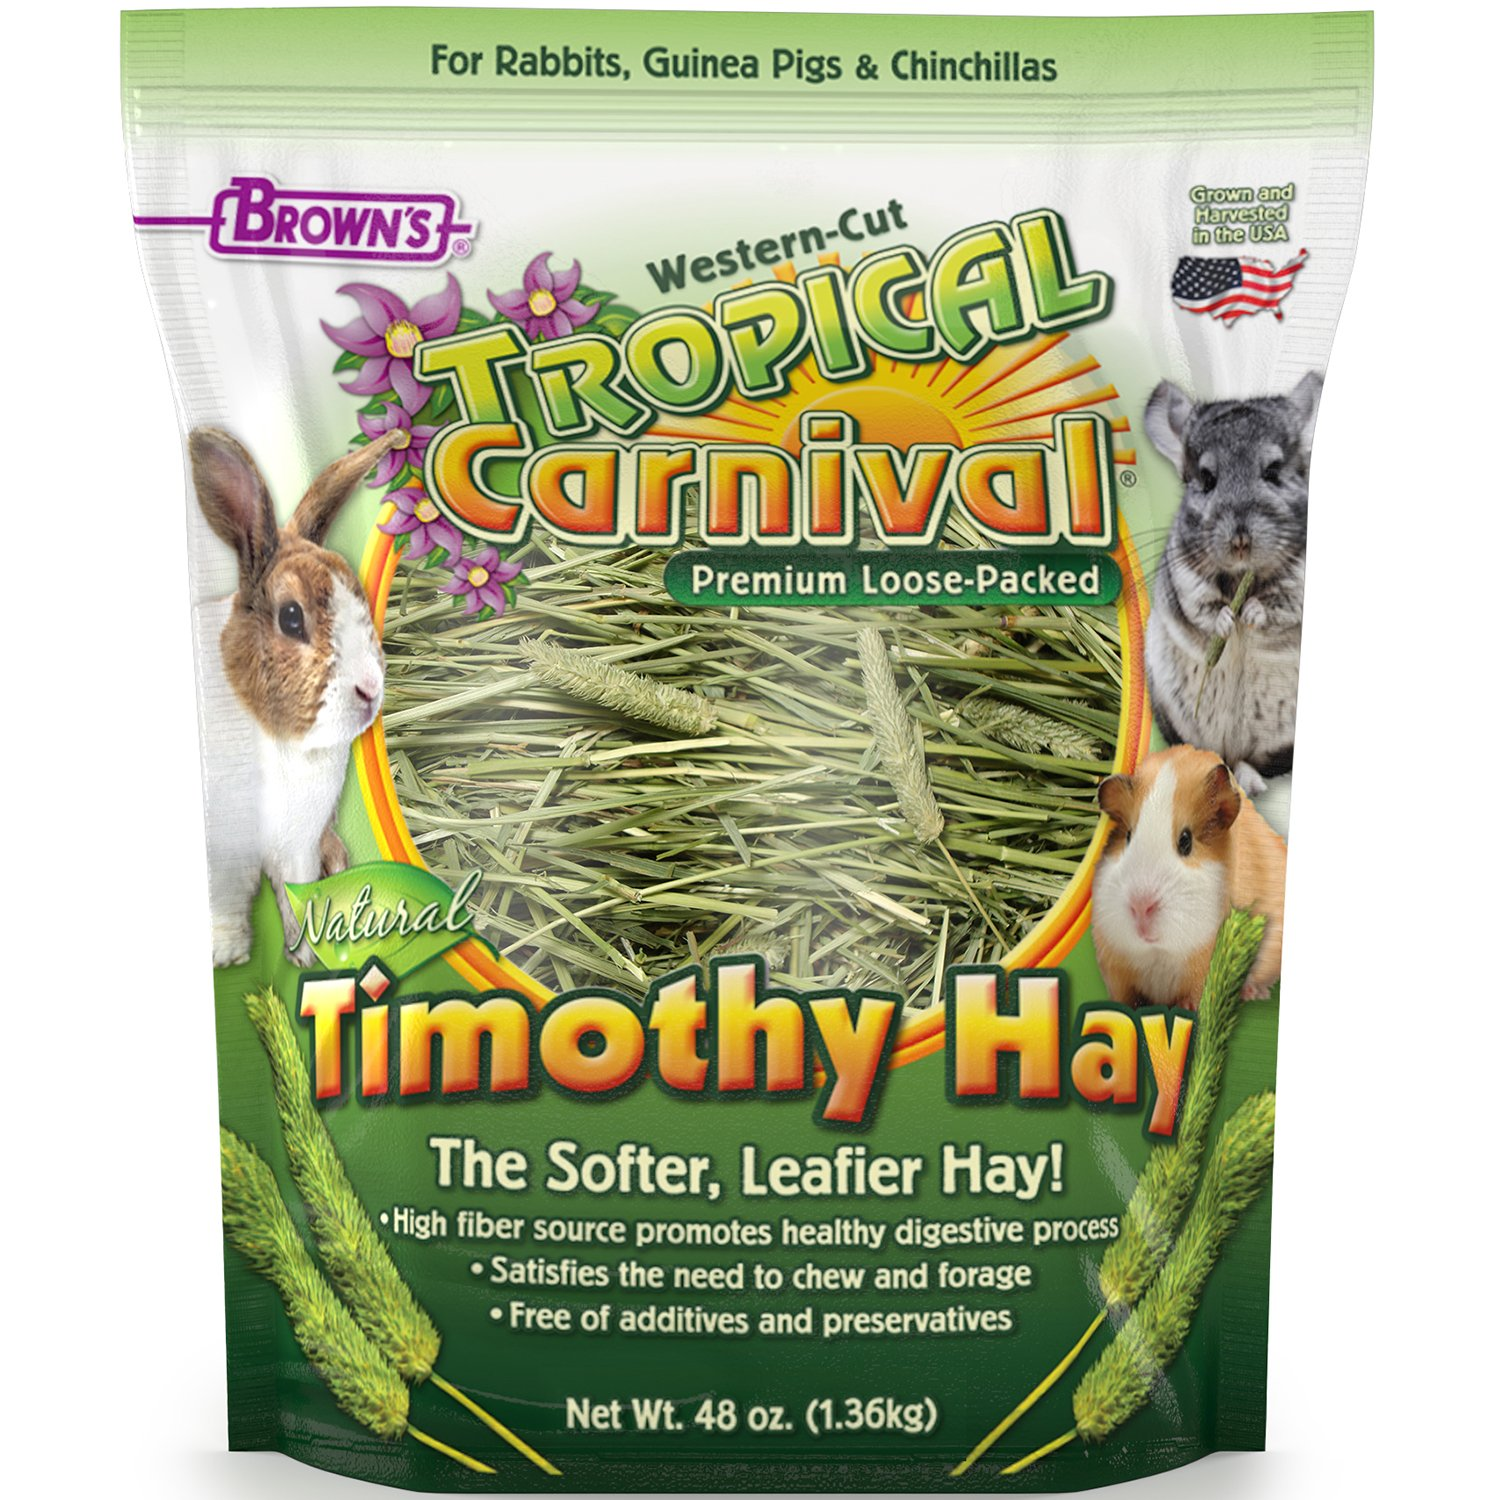 Tropical Carnival F.M. Brown's Natural Timothy Hay for Guinea Pigs, Rabbits, and Other Small Animals, with High Fiber for Healthy Digestion